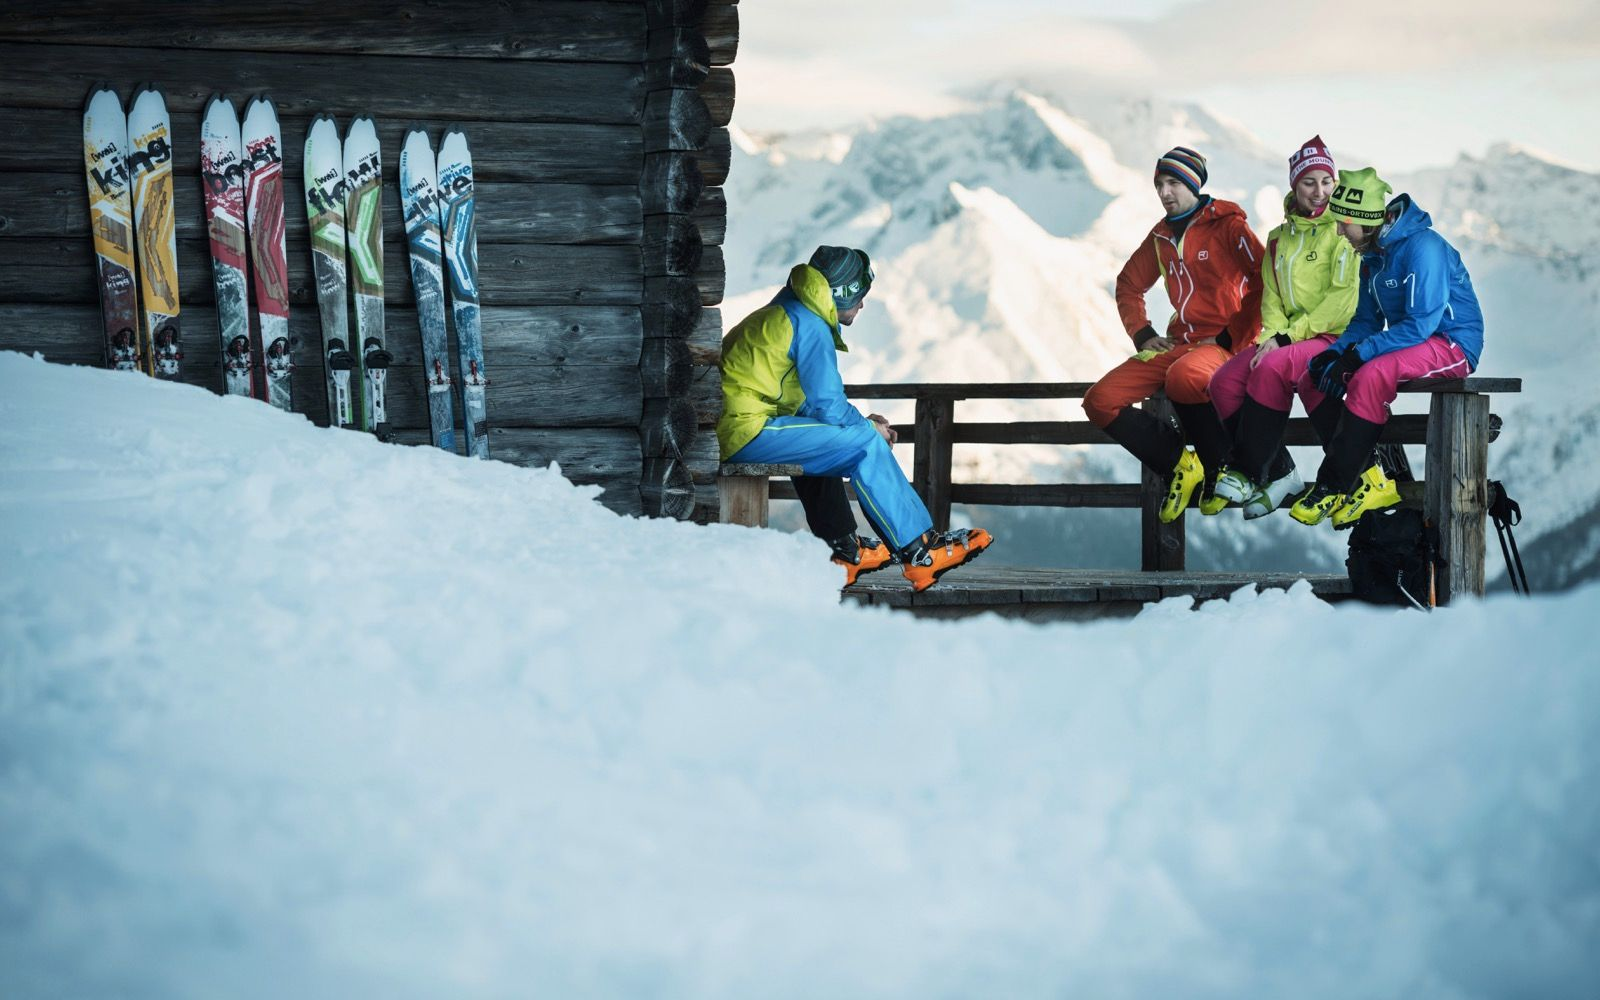 A group of four skiers sitting outside of a chalet that has pairs of skis resting on the side of the wall.